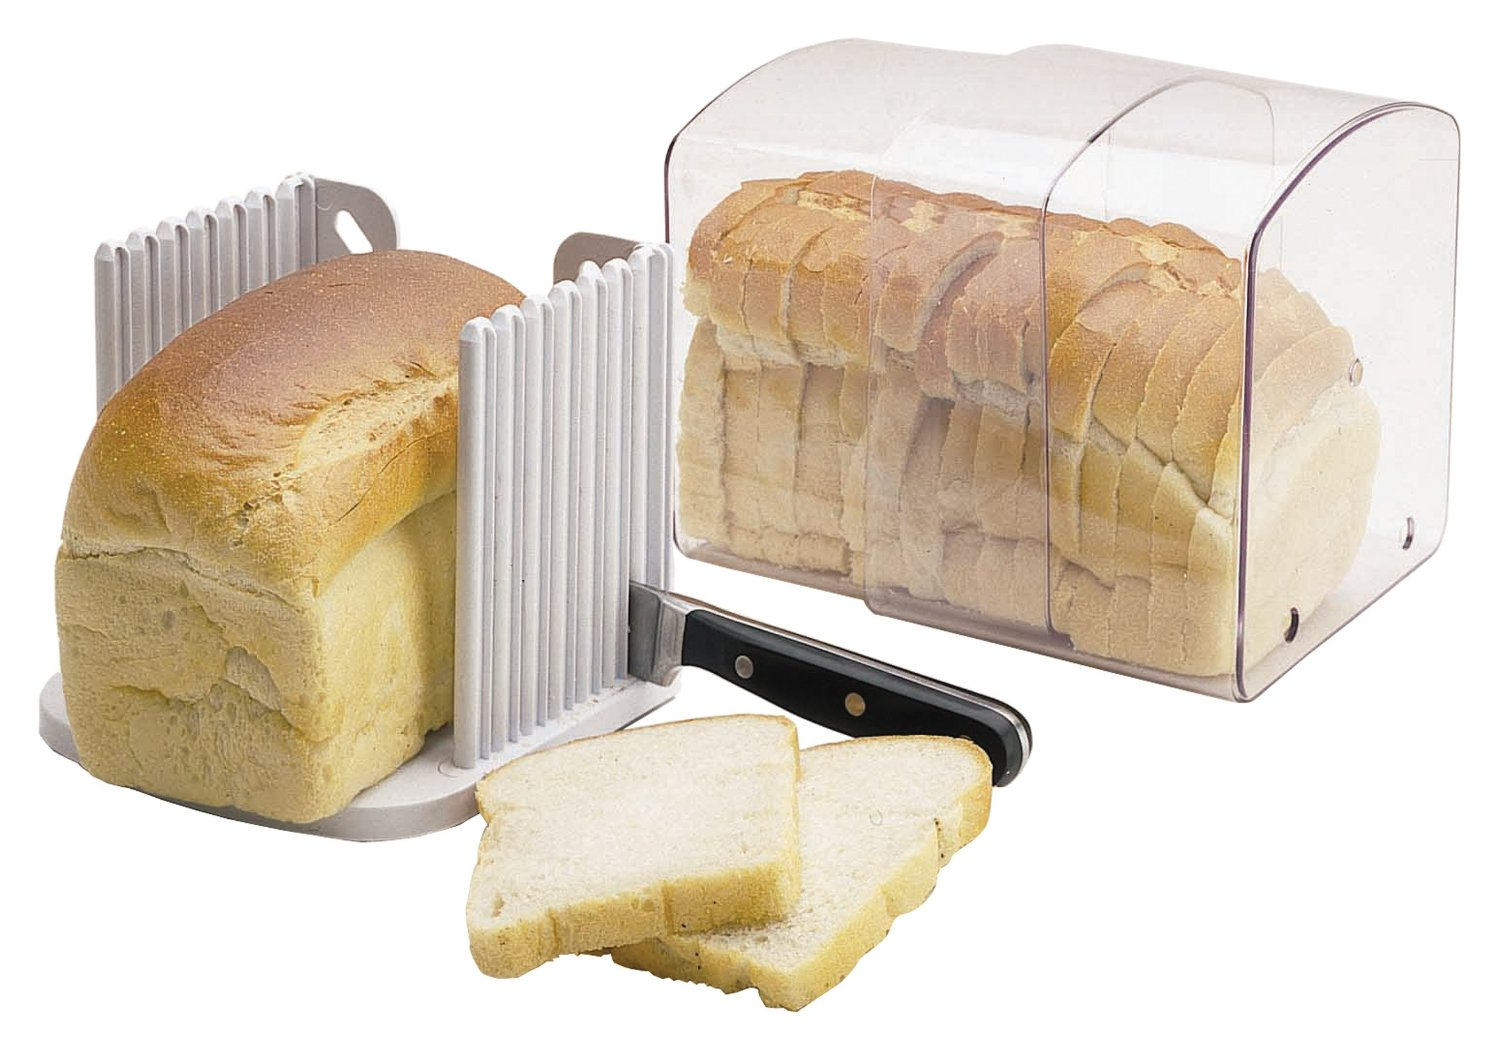 bread slicing machine for home use